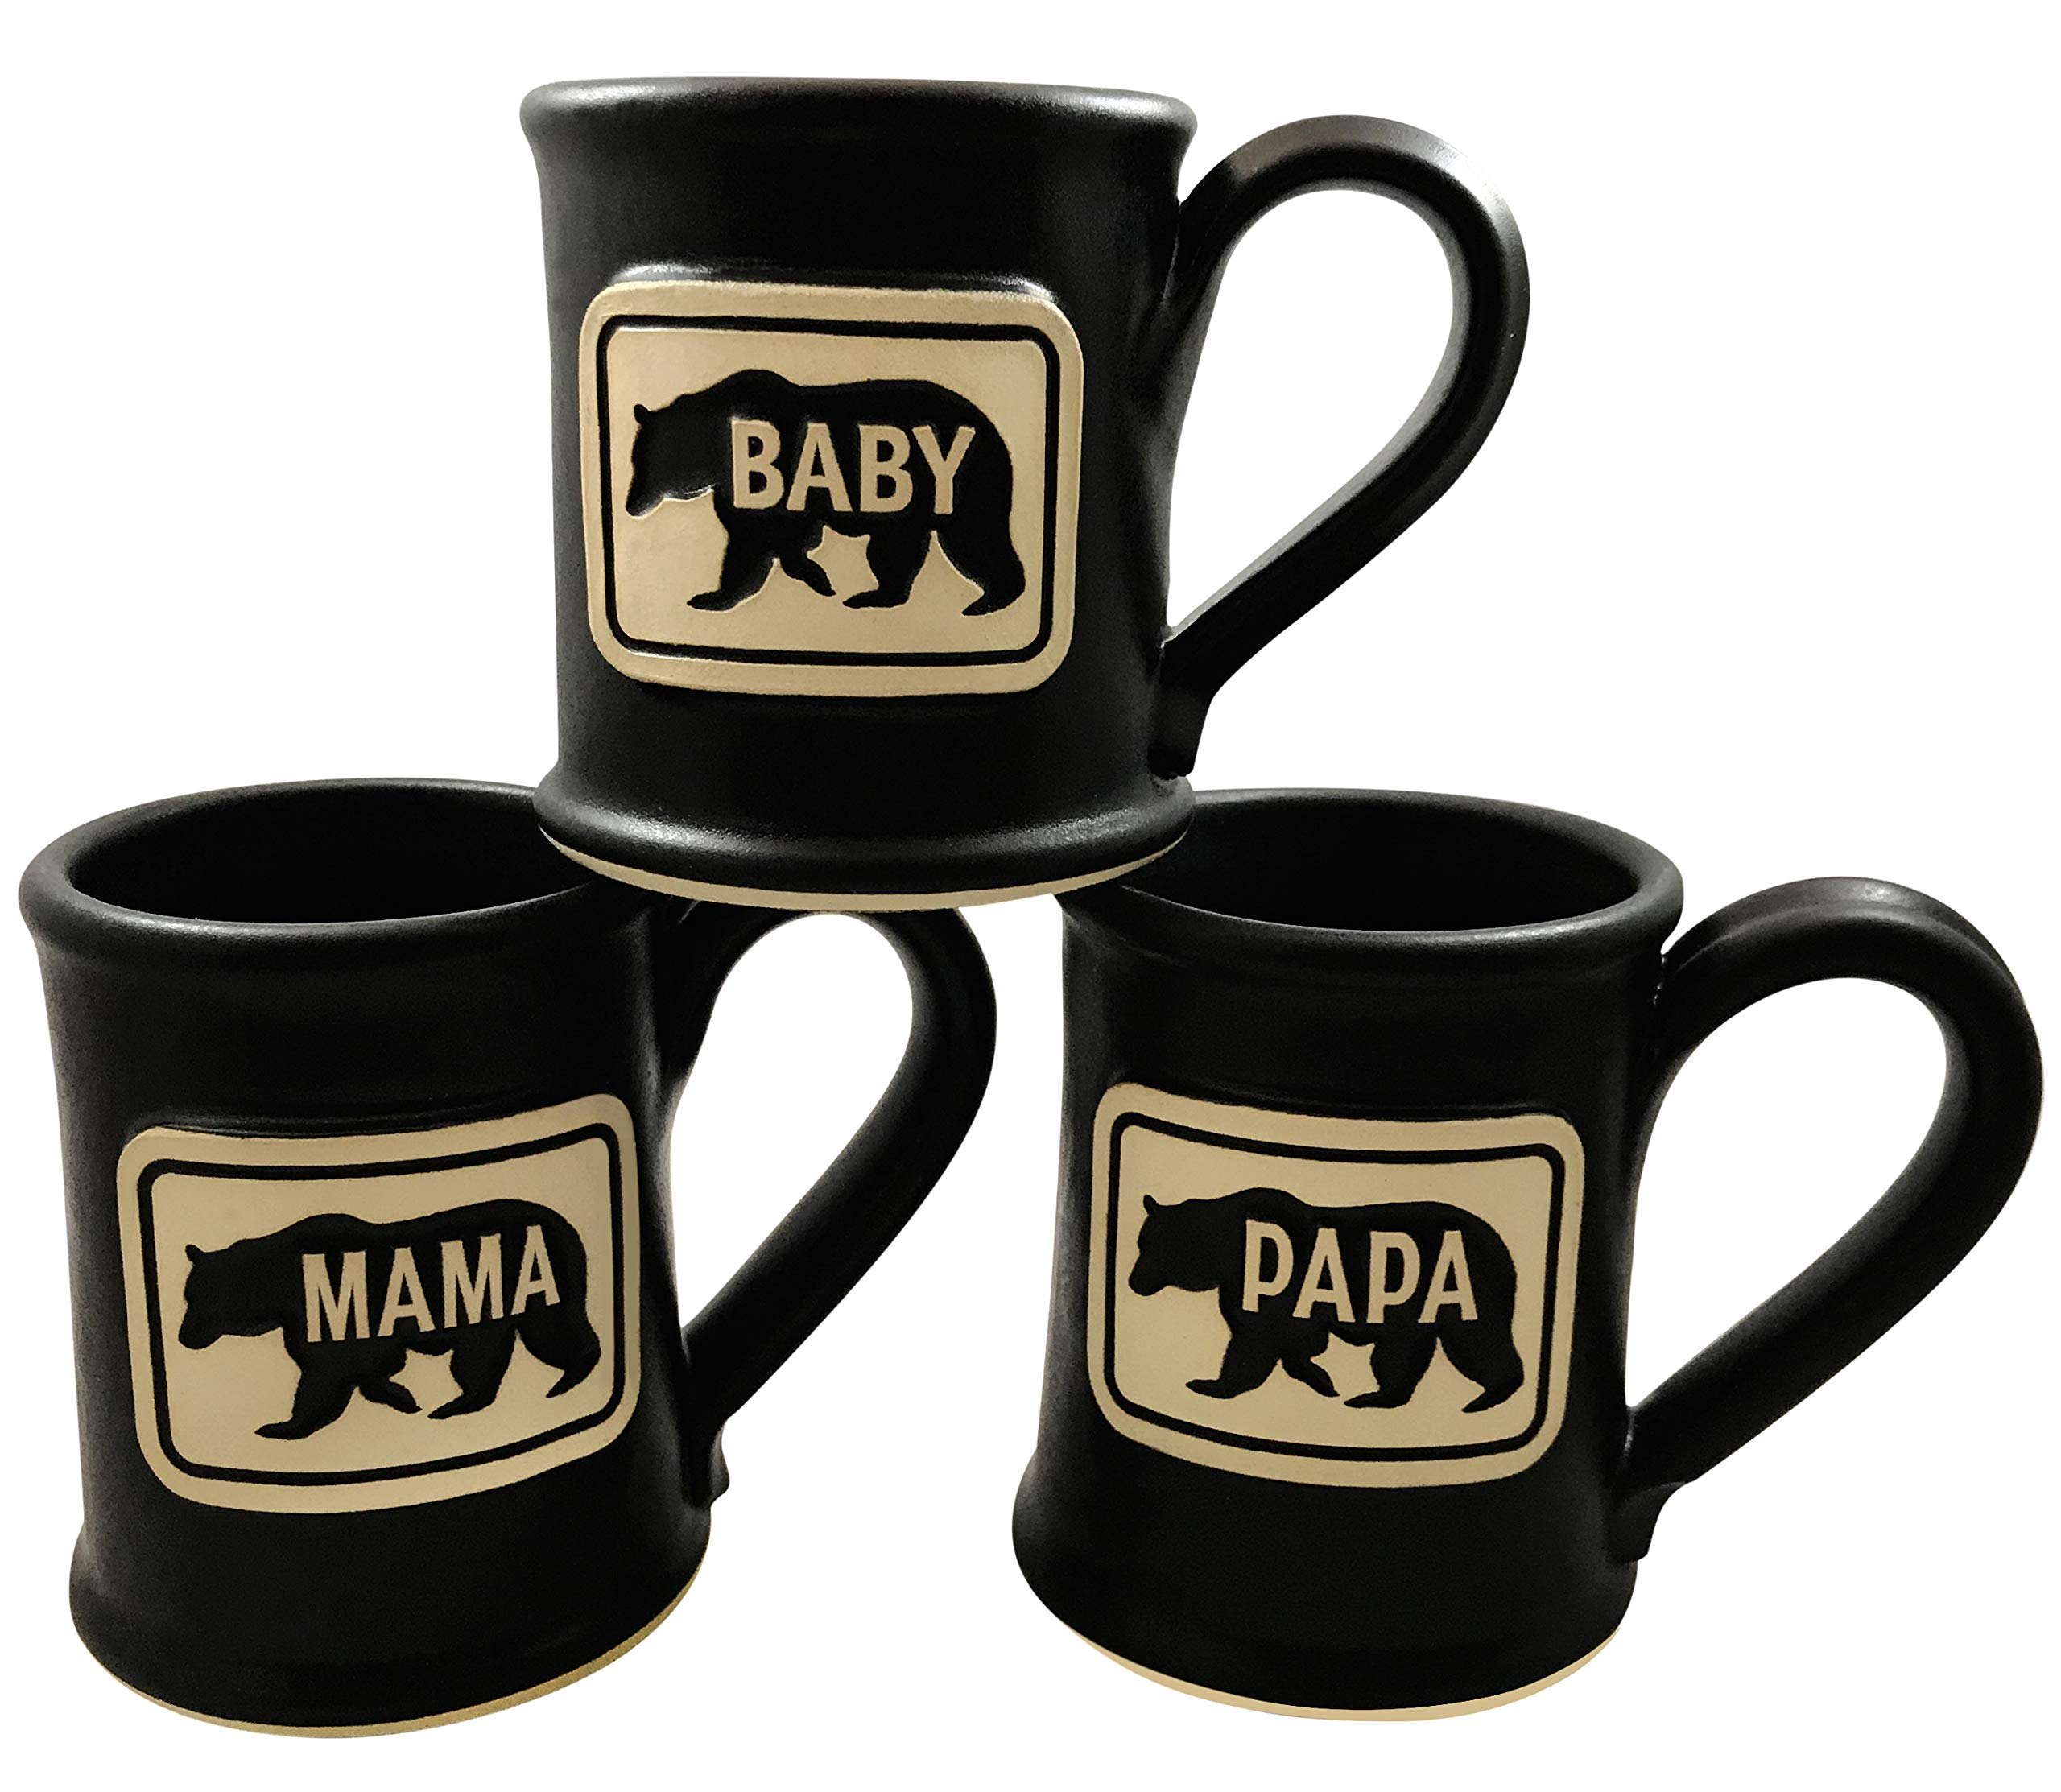 Great Gift for New Parents – Set of Papa Bear, Moma Bear, and Baby Bear Mugs – Handmade In The USA by Uncommon Clay